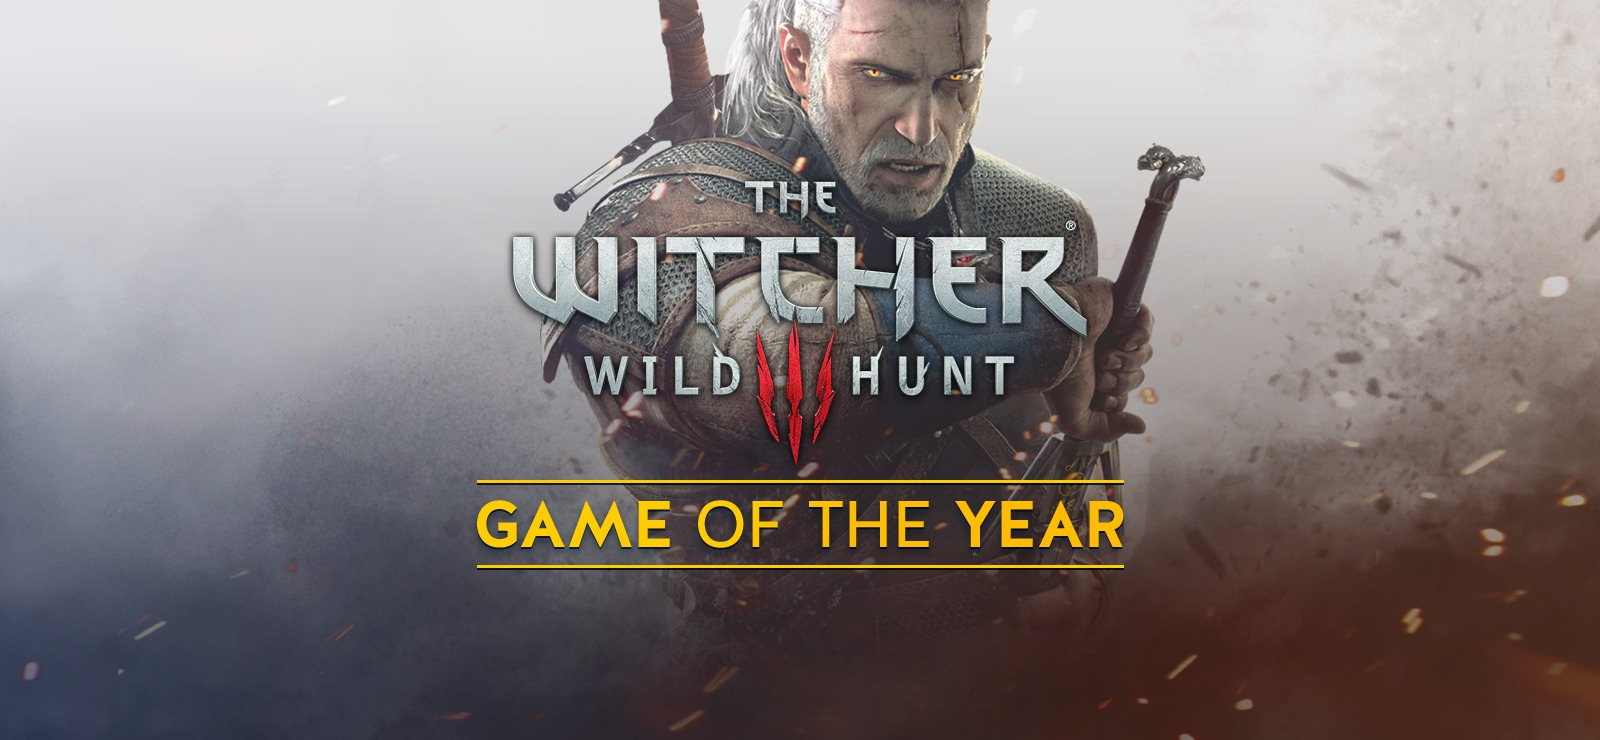 The Witcher 3: Wild Hunt GOTYThe Witcher 3: Wild Hunt GOTY